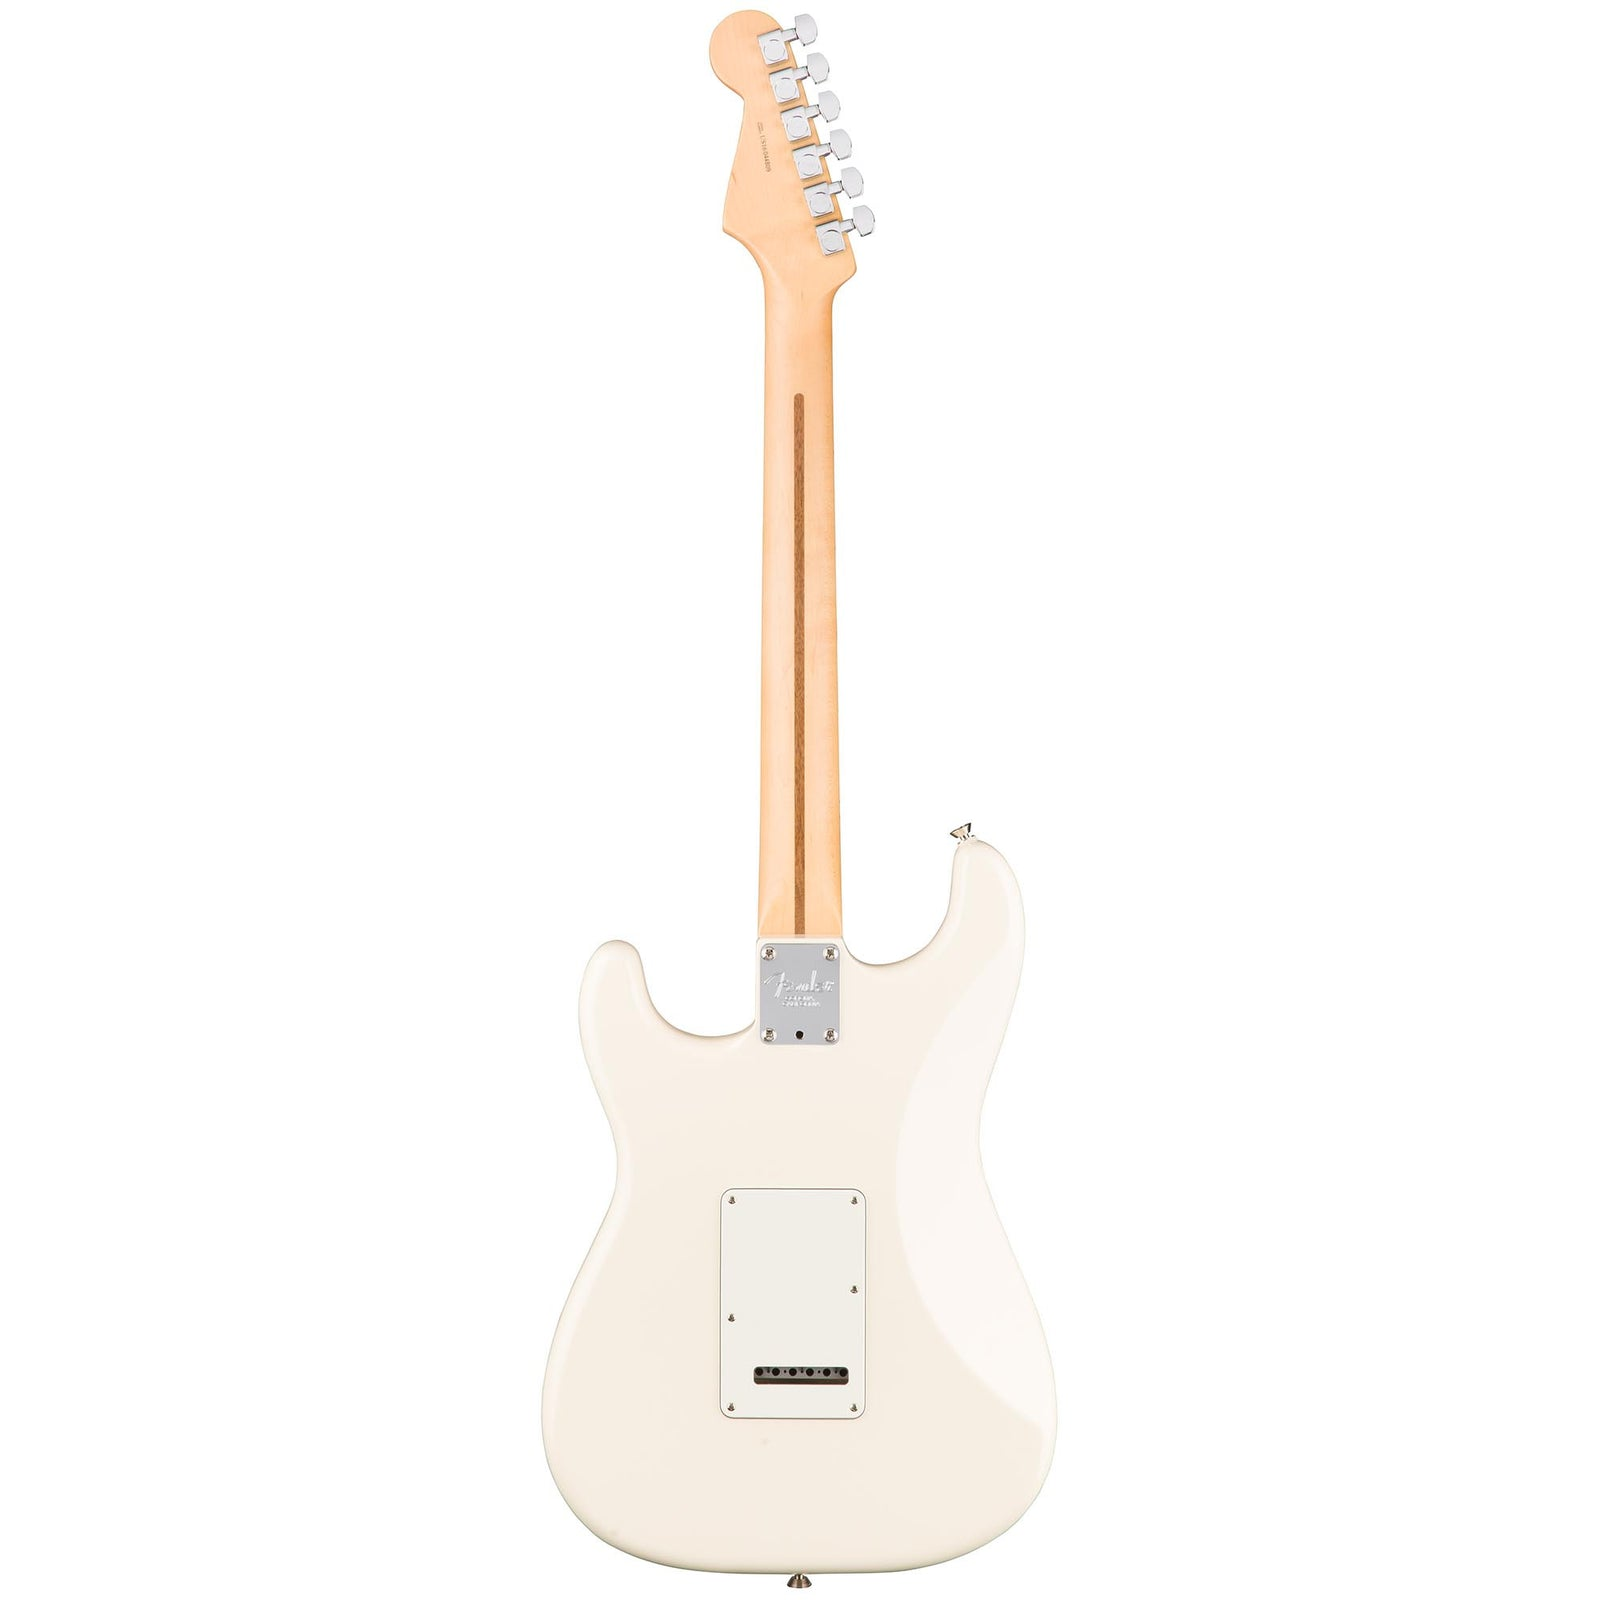 Fender American Professional Stratocaster - Olympic White - Maple